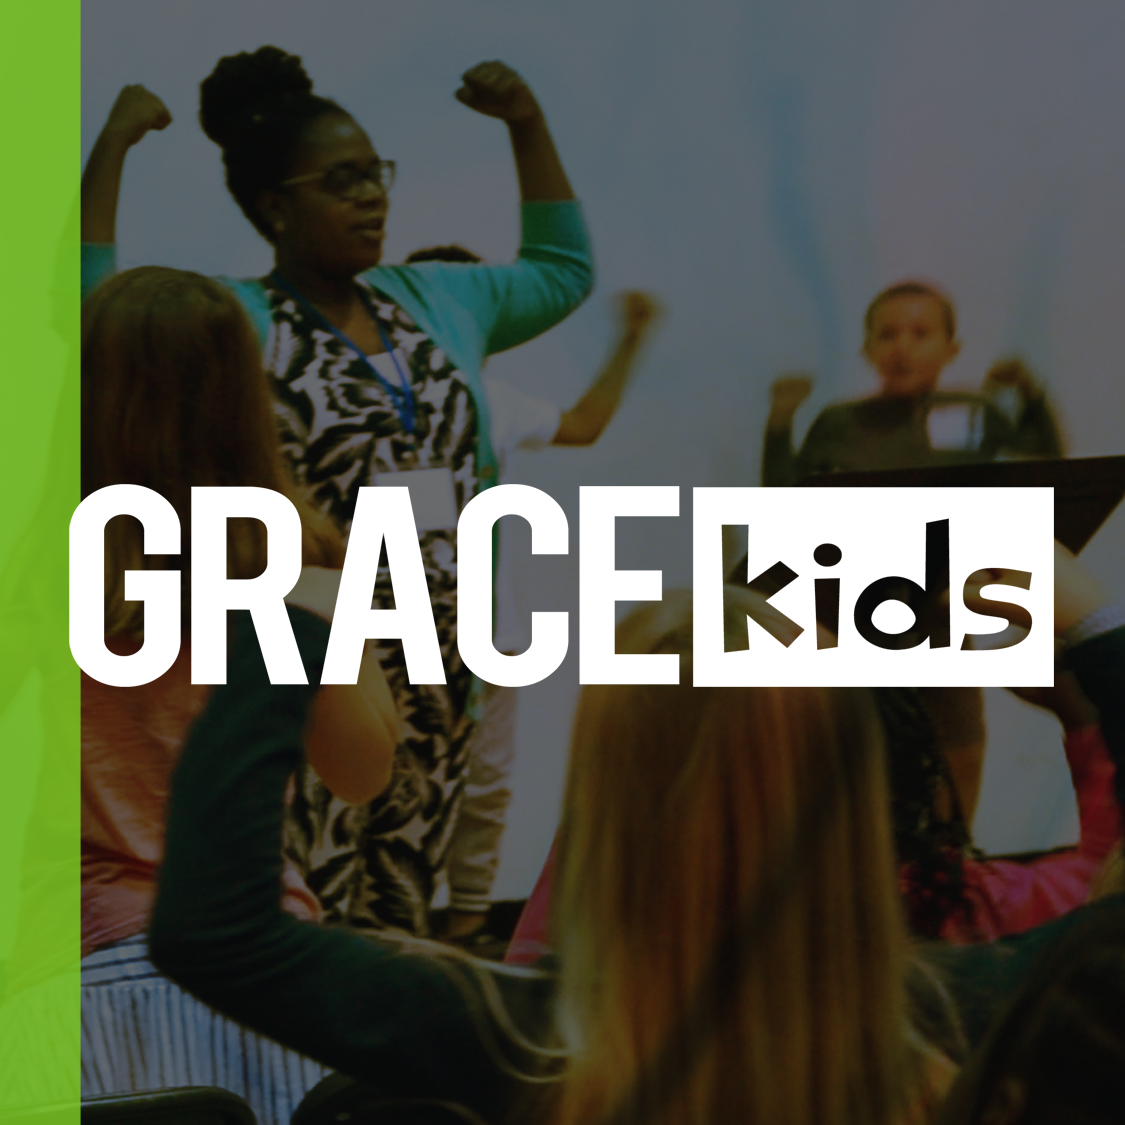 GRACE KIDS - SUNDAYS @ 8:30am, 10:00am, and 11:30amWEDNESDAYS @ 6:30pm (AWANA)